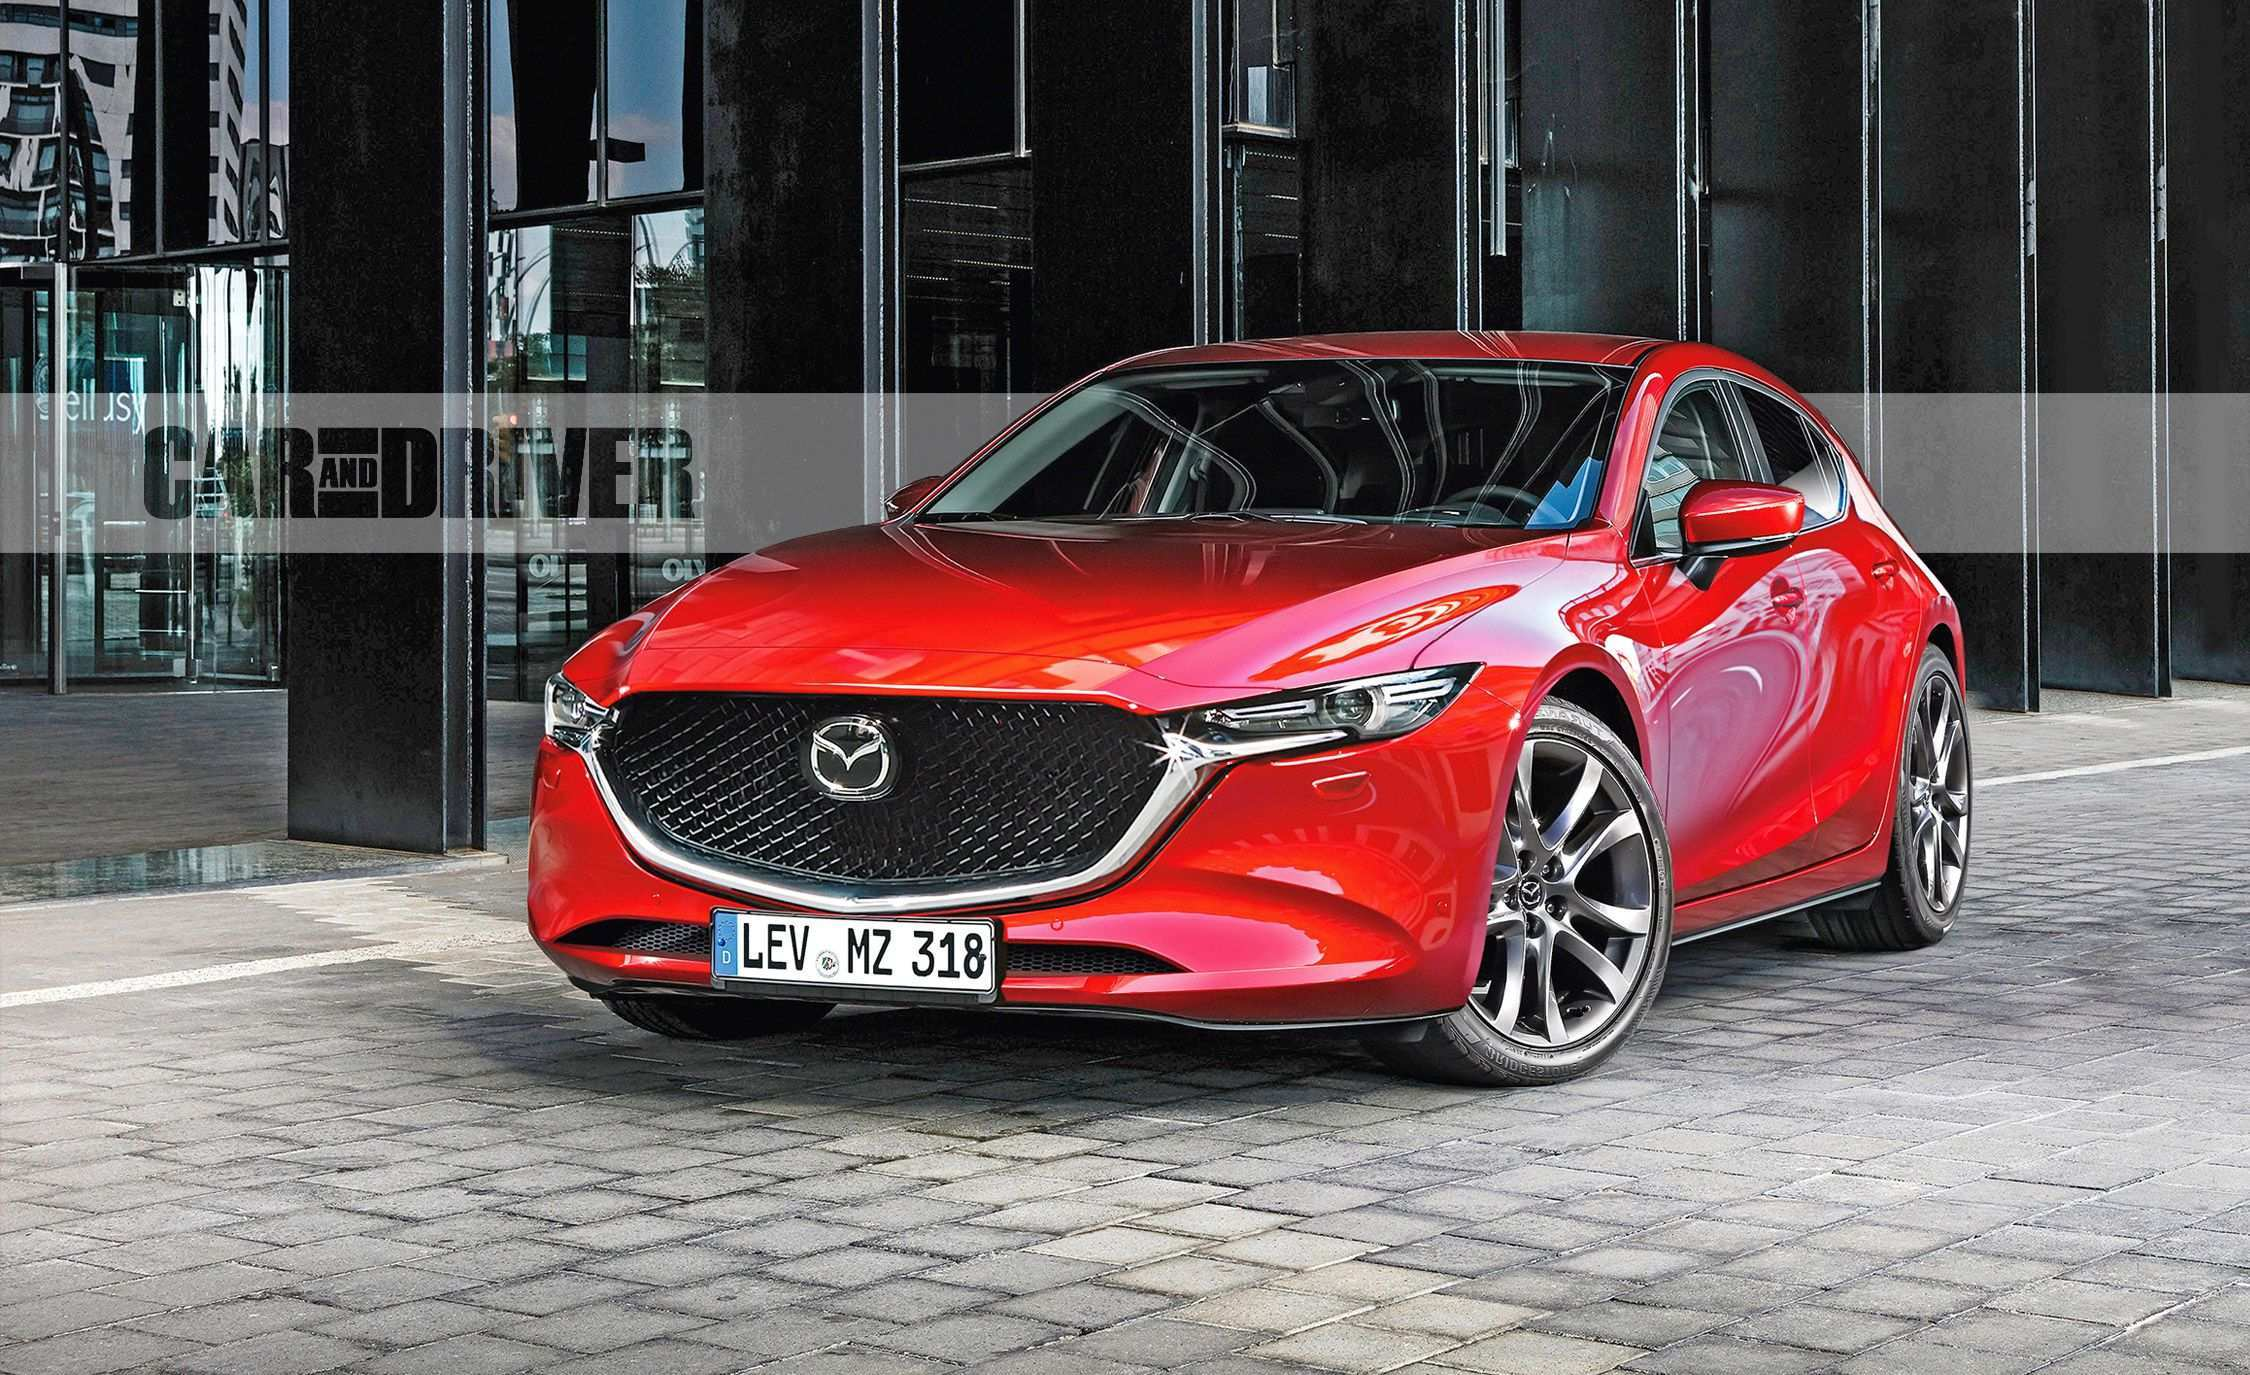 11 Concept of 2020 Mazda Lineup Release Date for 2020 Mazda Lineup